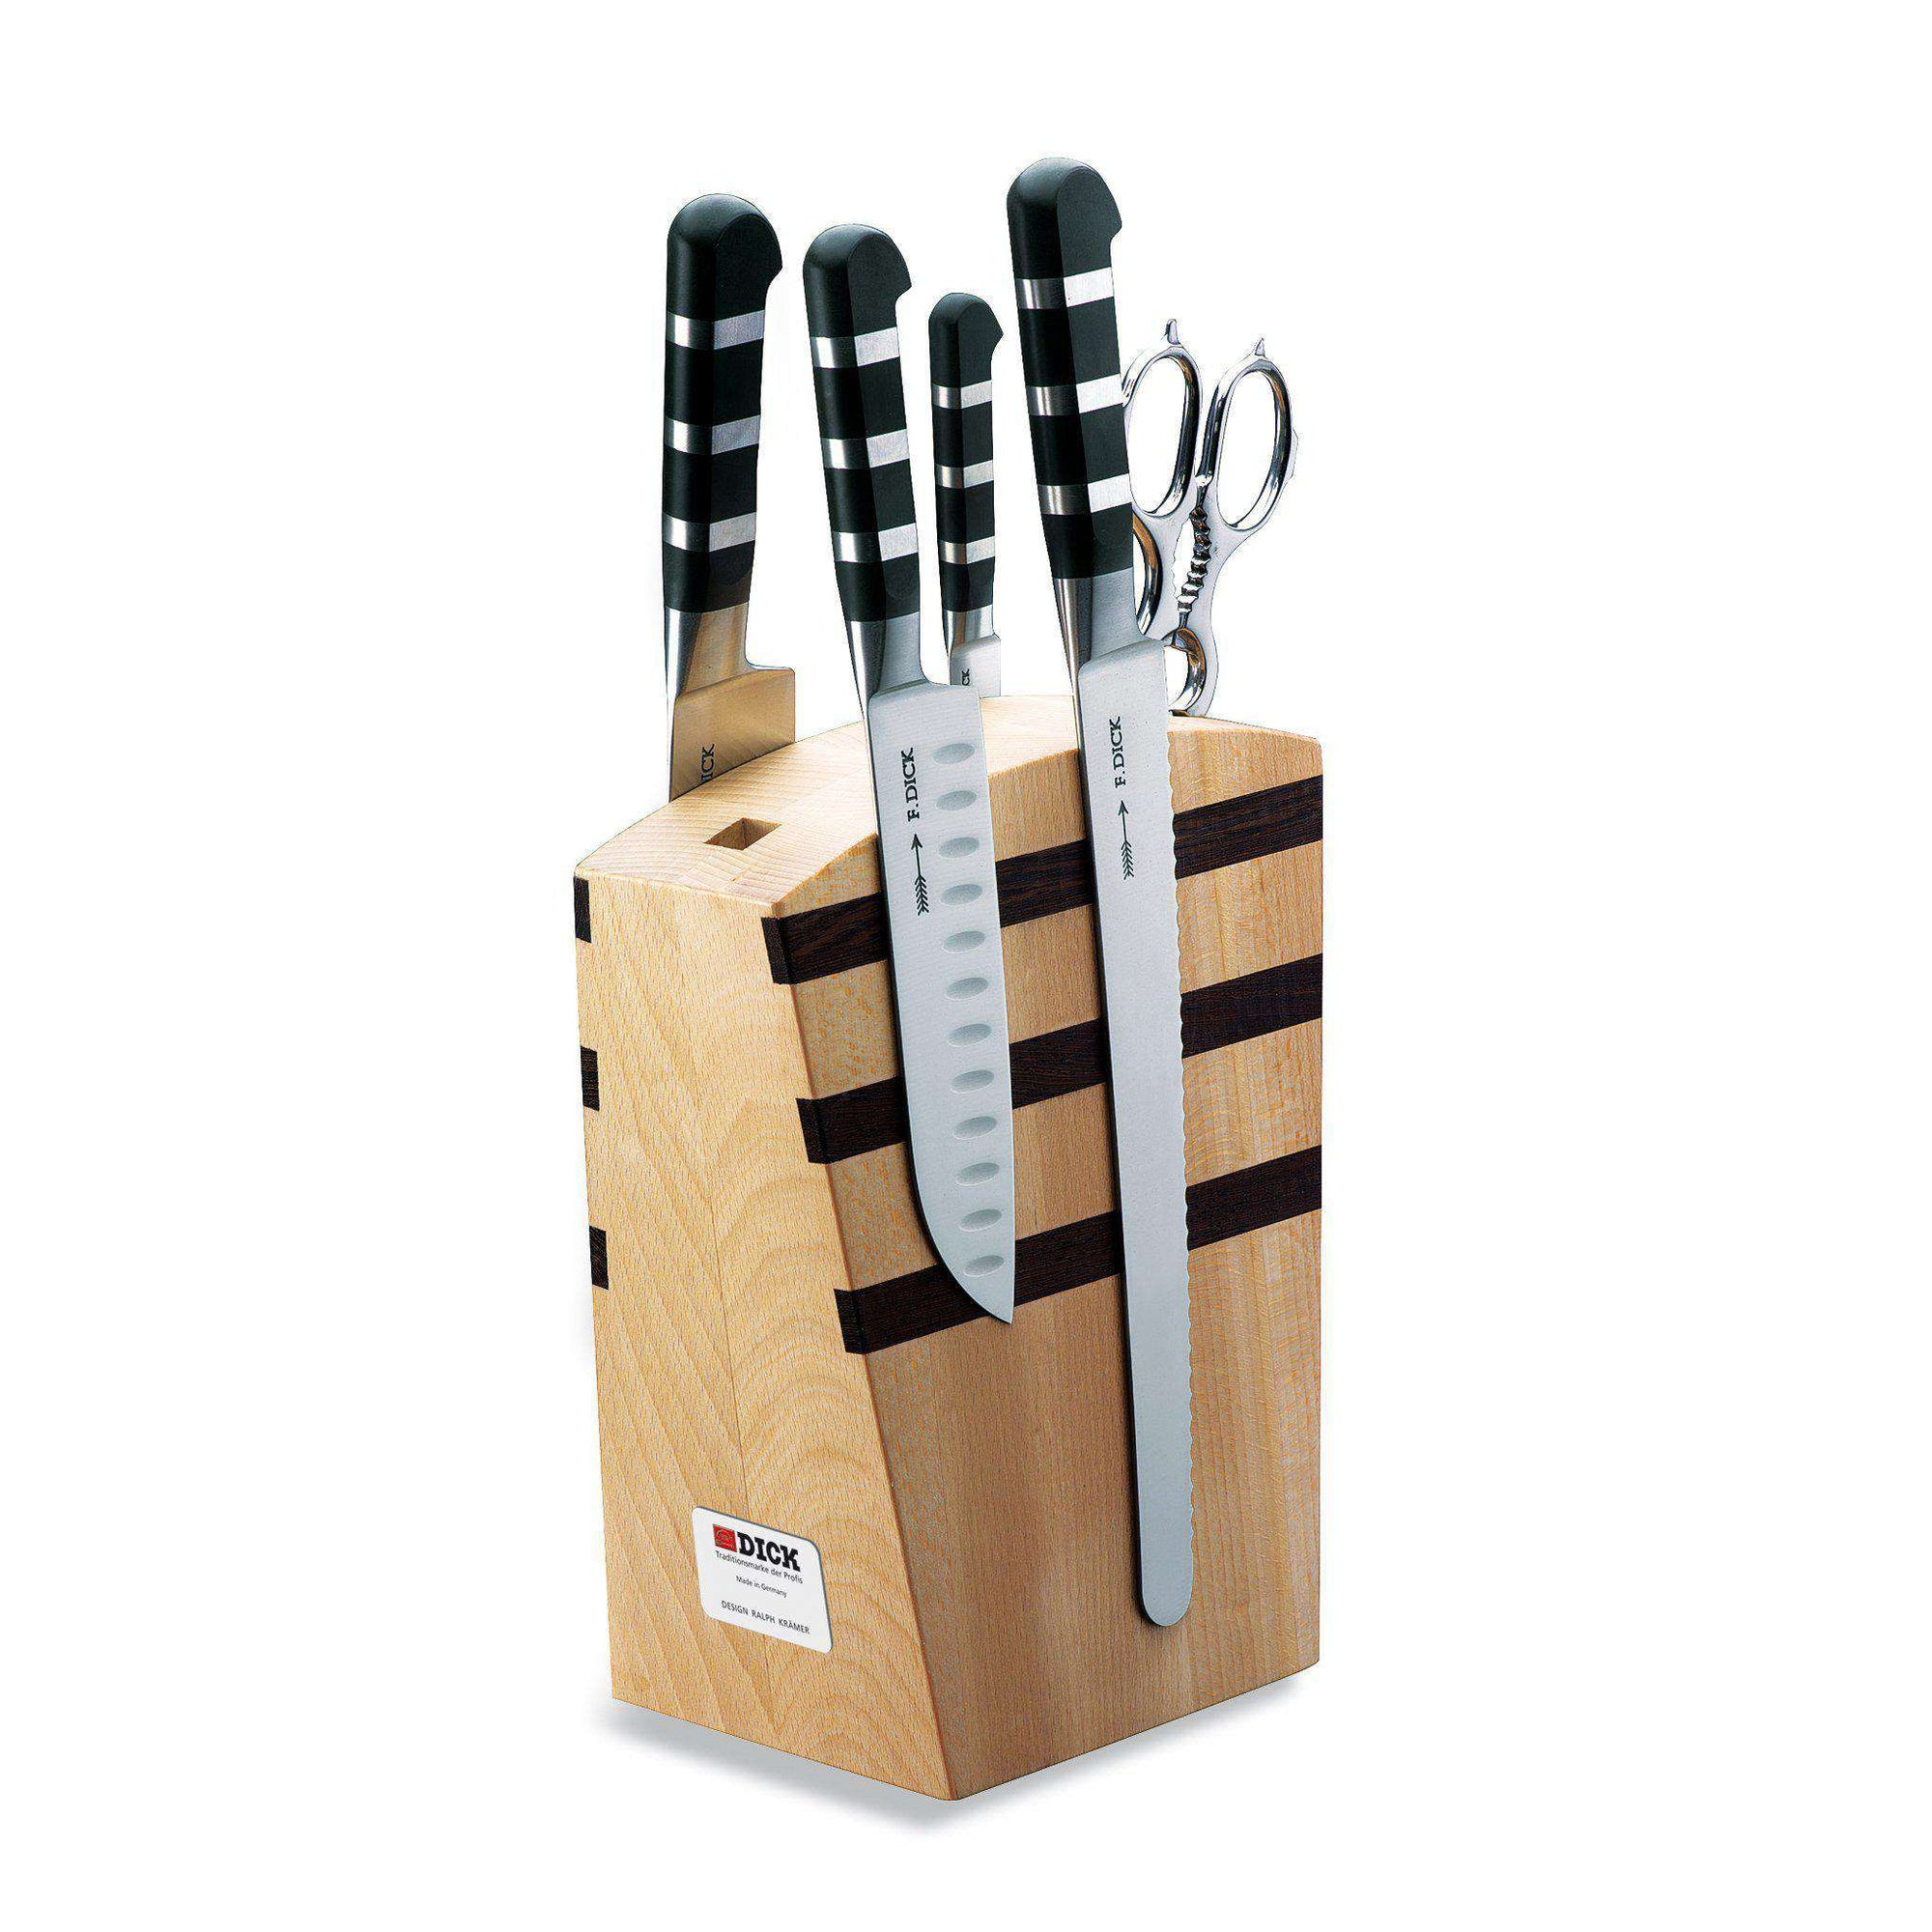 F DICK 1905 Series Magnetic Wooden Knife Block 5 Pc Set - House of Knives